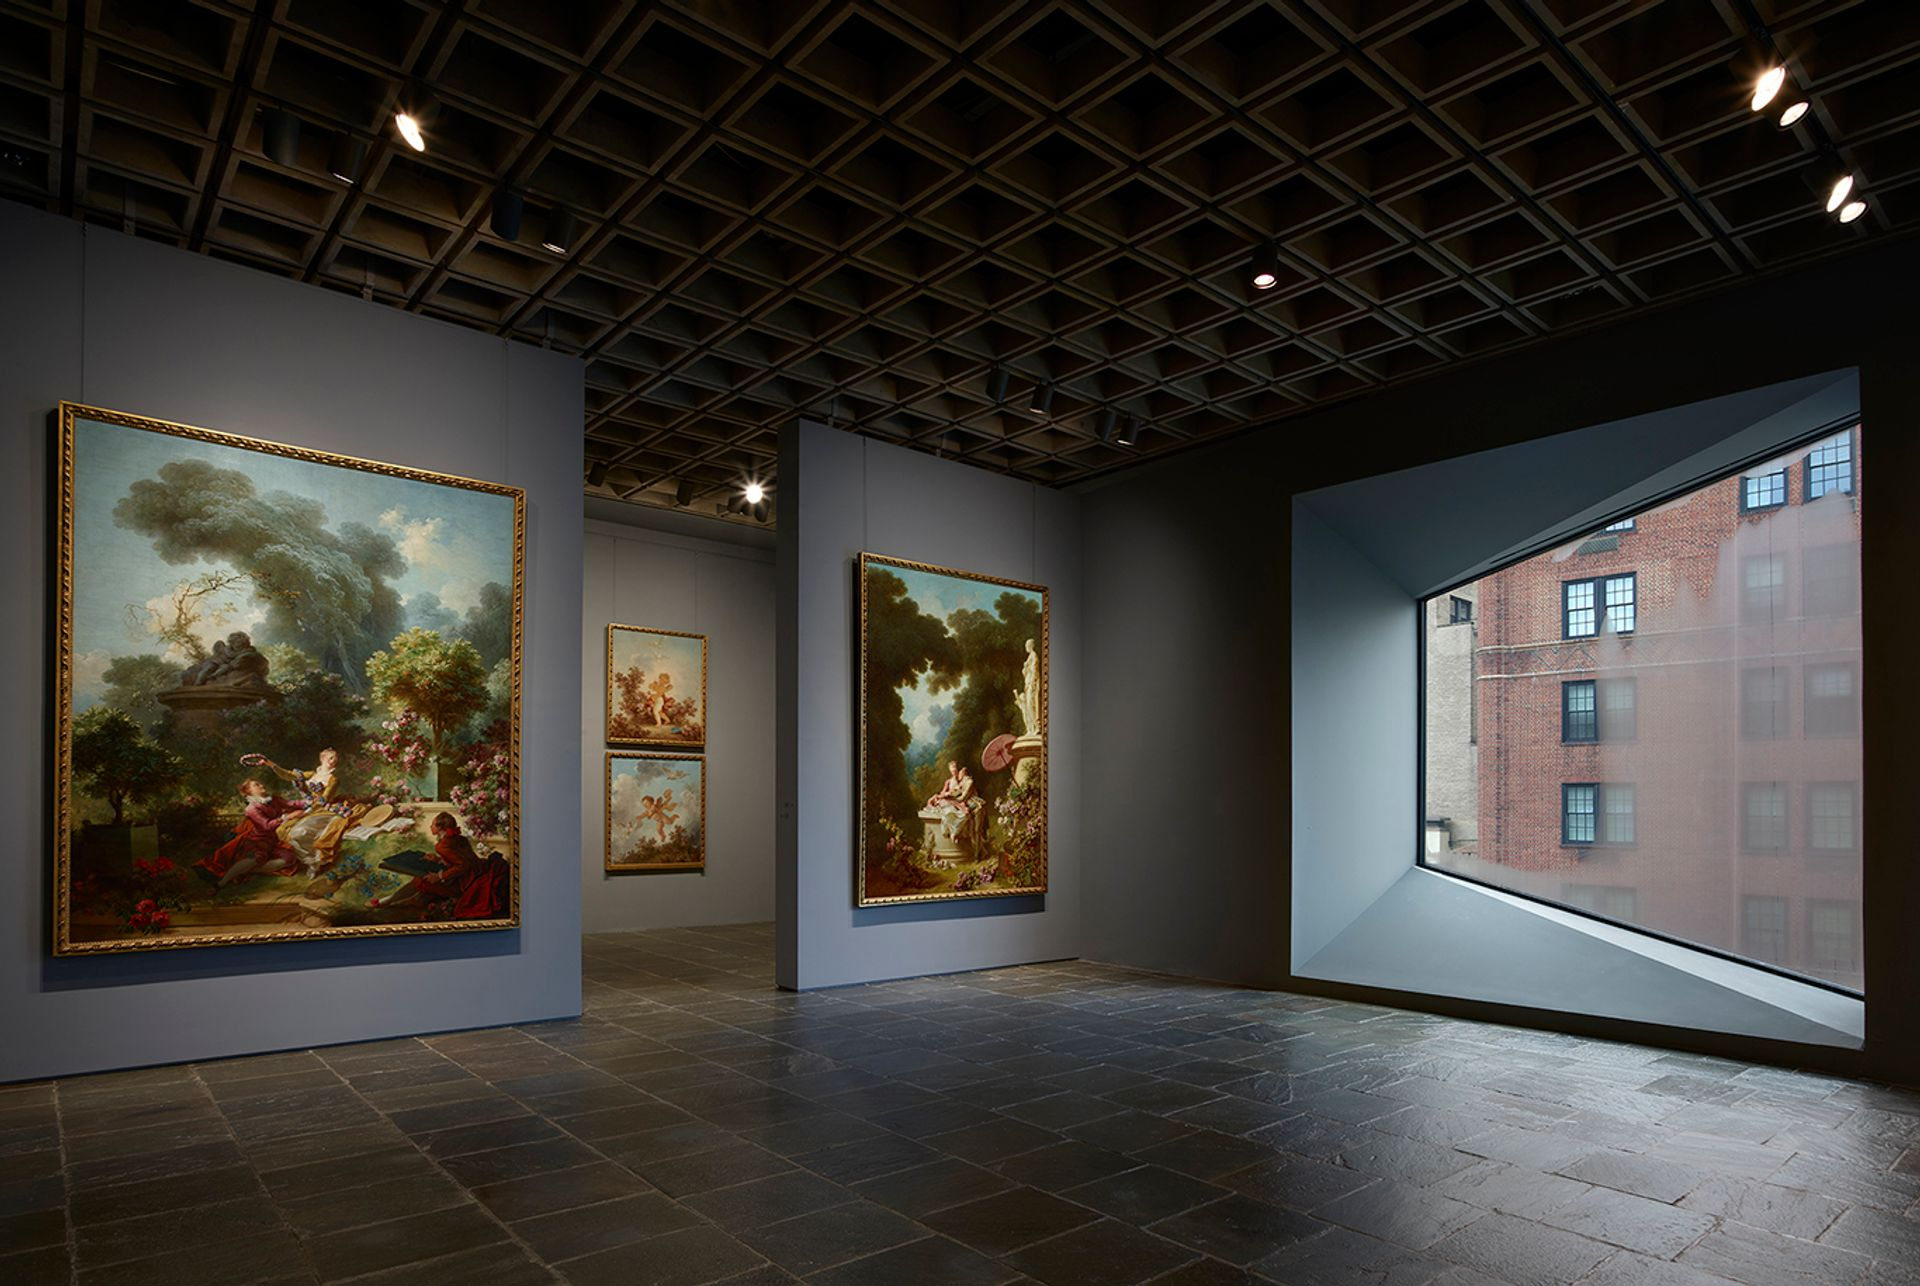 Four panels of Fragonard's 1771-72 The Progress of Love series at the Frick Madison The Frick Collection; photo: Joe Coscia